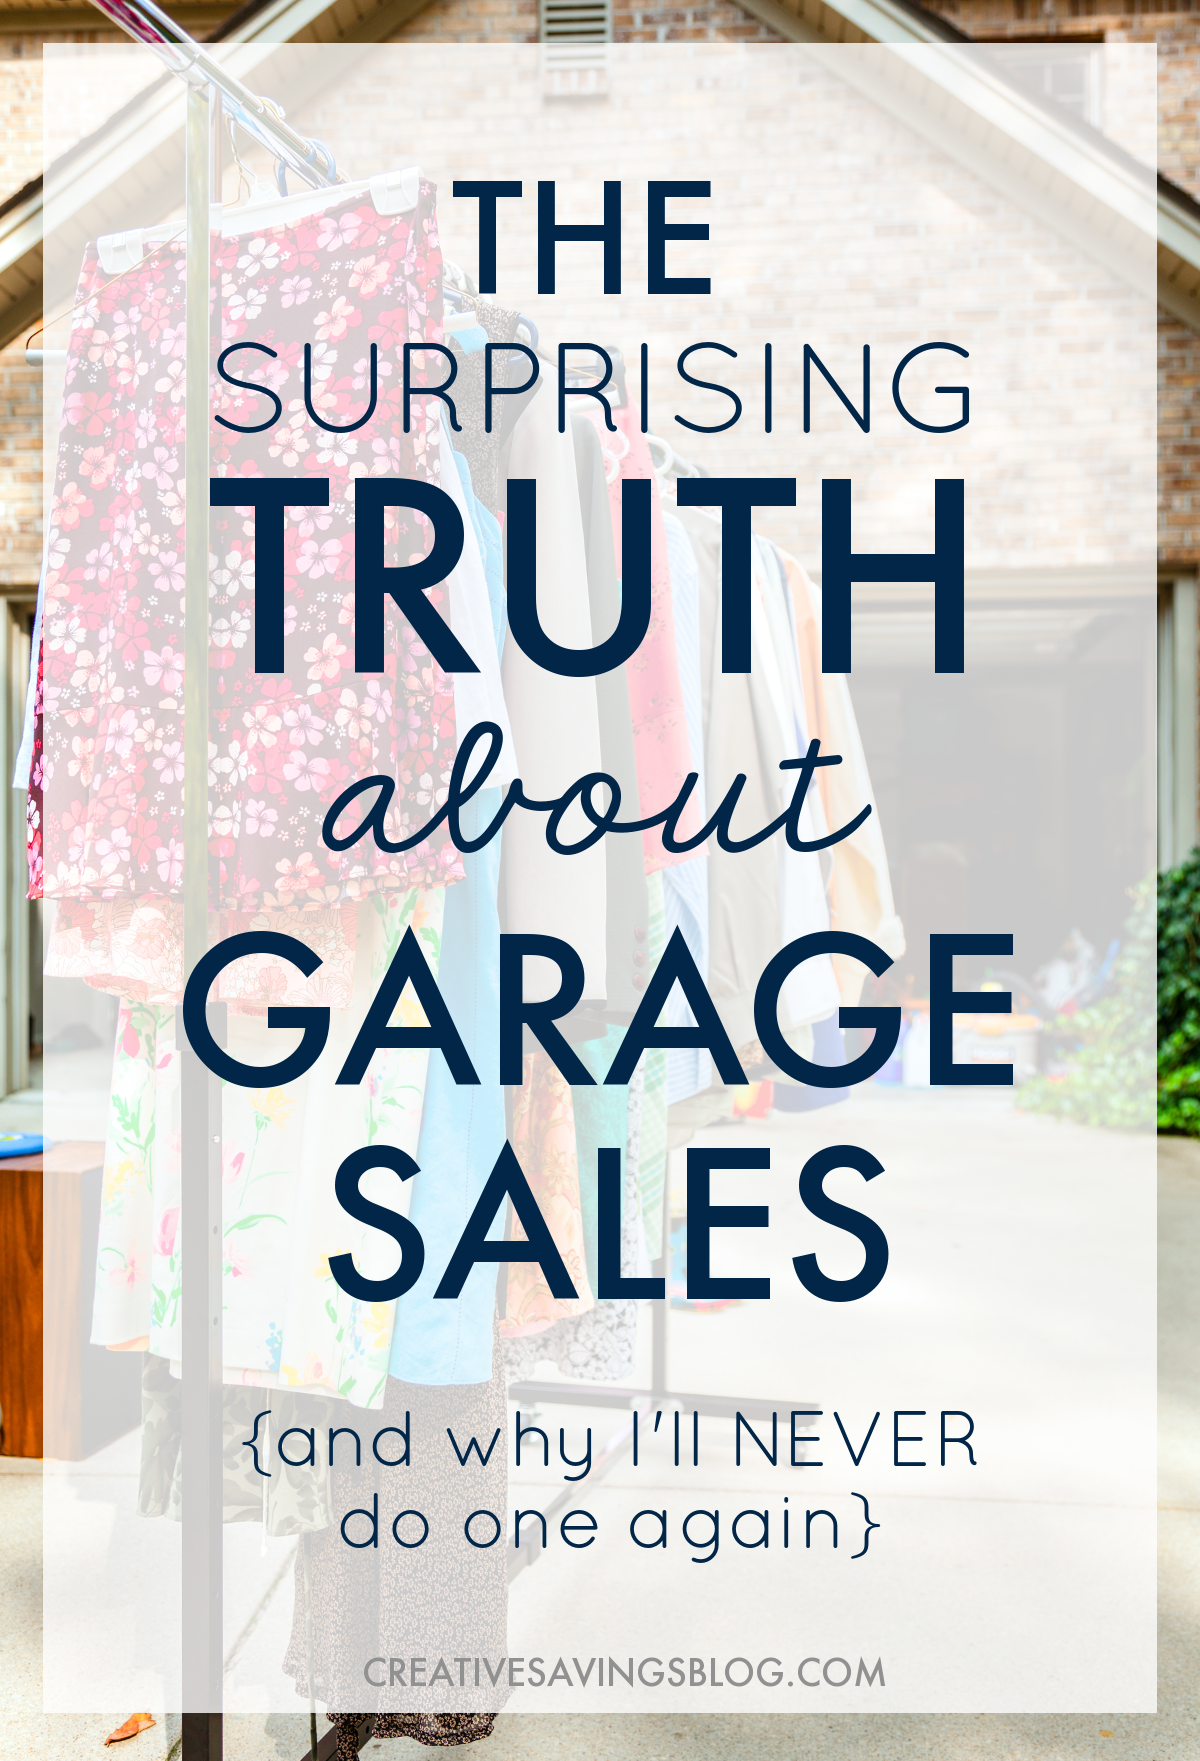 As I looked for garage sale ideas I came across this post that challenged me to wonder: Are Garage Sales Worth It? I can't believe how much sense this makes! Work for several days preparing a sale, sit outside in the sun all day, force myself to talk awkwardly to random strangers, all for fifty bucks! Yeah, I'm going to take this girls advice and save my time. I'll just donate to charity instead. Bonus, I don't have to store stuff any more while I wait for the next garage sale, instead I get rid of clutter right away which helps me live in a clutter free home all year long!